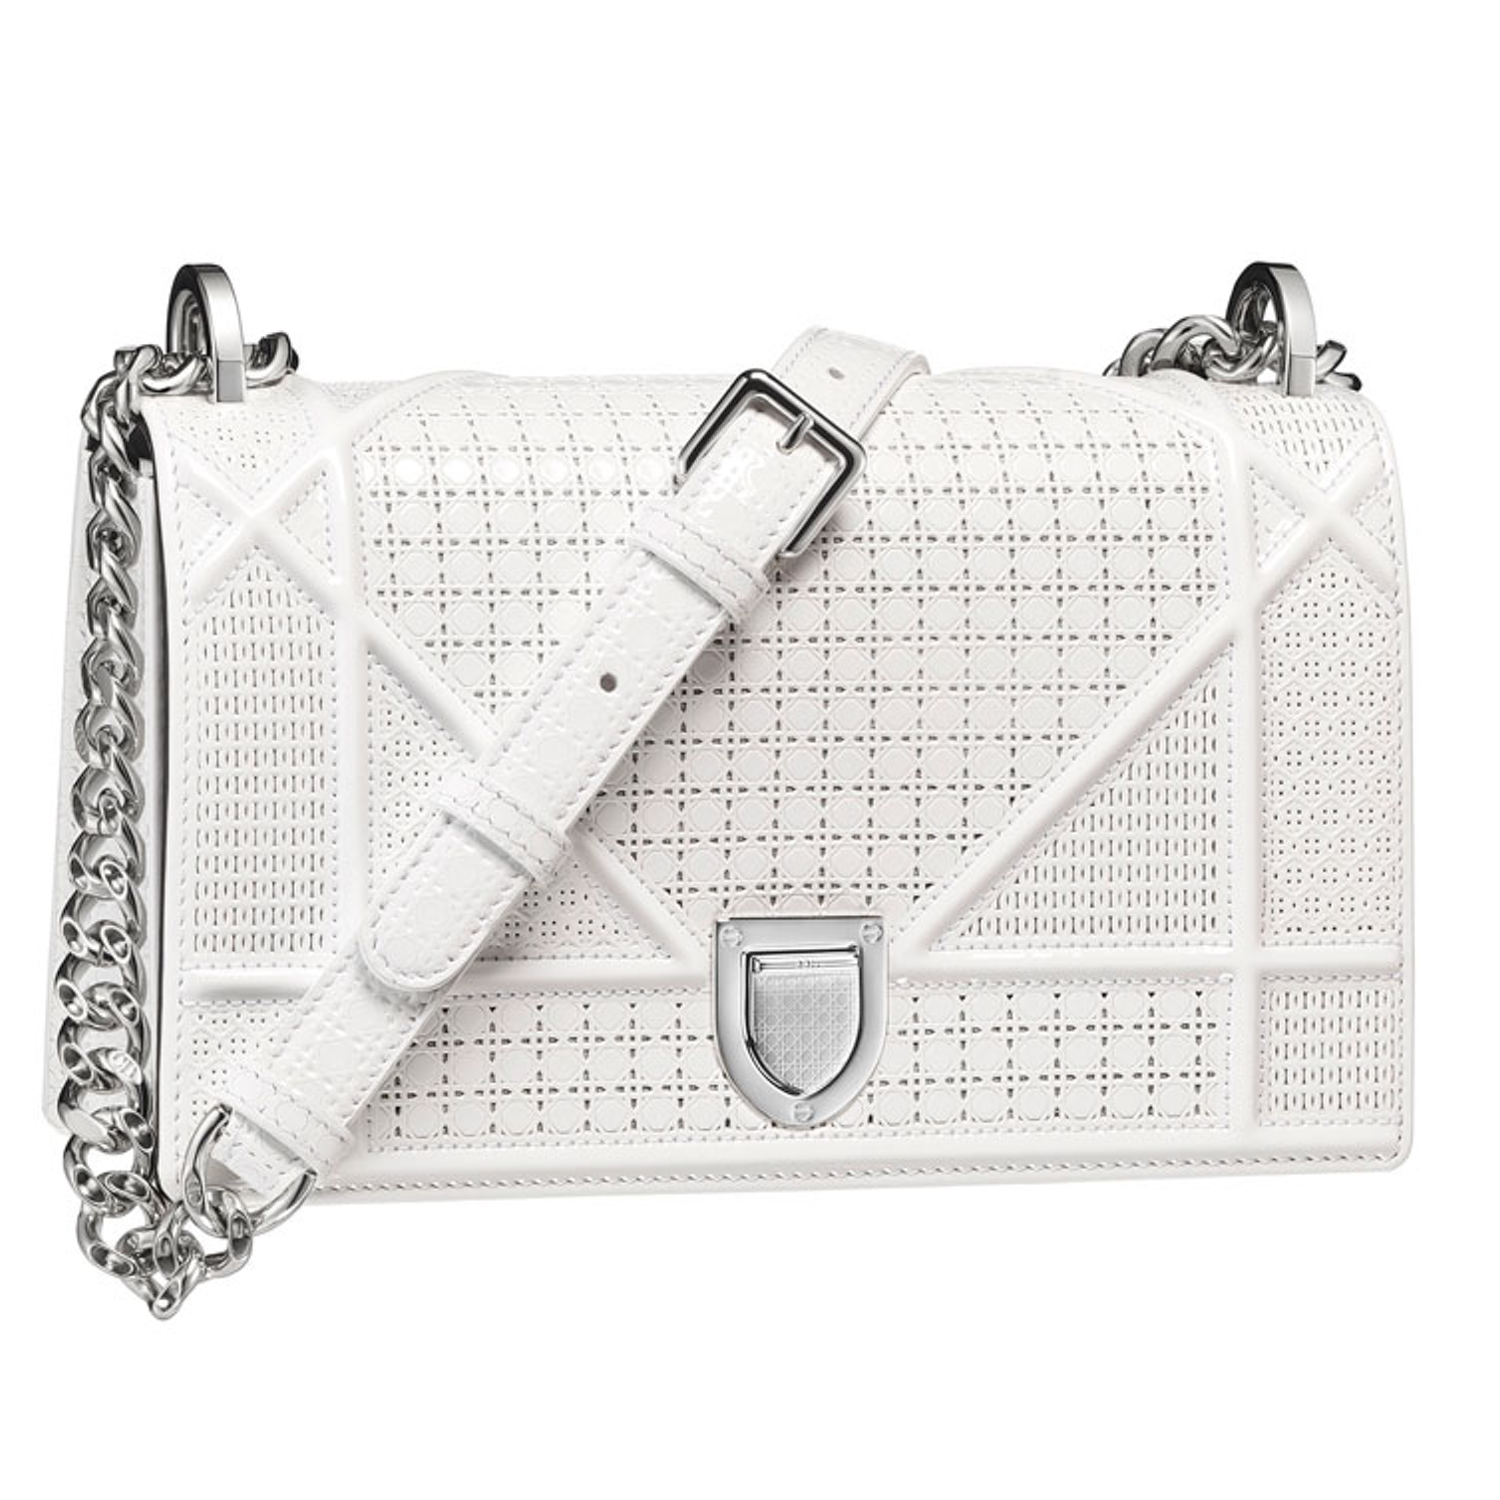 "5 Luxury Bags I Need (want) // Luxury Handbag Wishlist // Dior ""Diorama"" Bag // Valentino Rockstud Spike Shoulder Bag // Prada Cahier Bag // Chanel Vanity Case Bag // Louis Vuitton Twist Bag // Los Angeles Fashion Blogger Daphne Blunt: To Style, With Love"